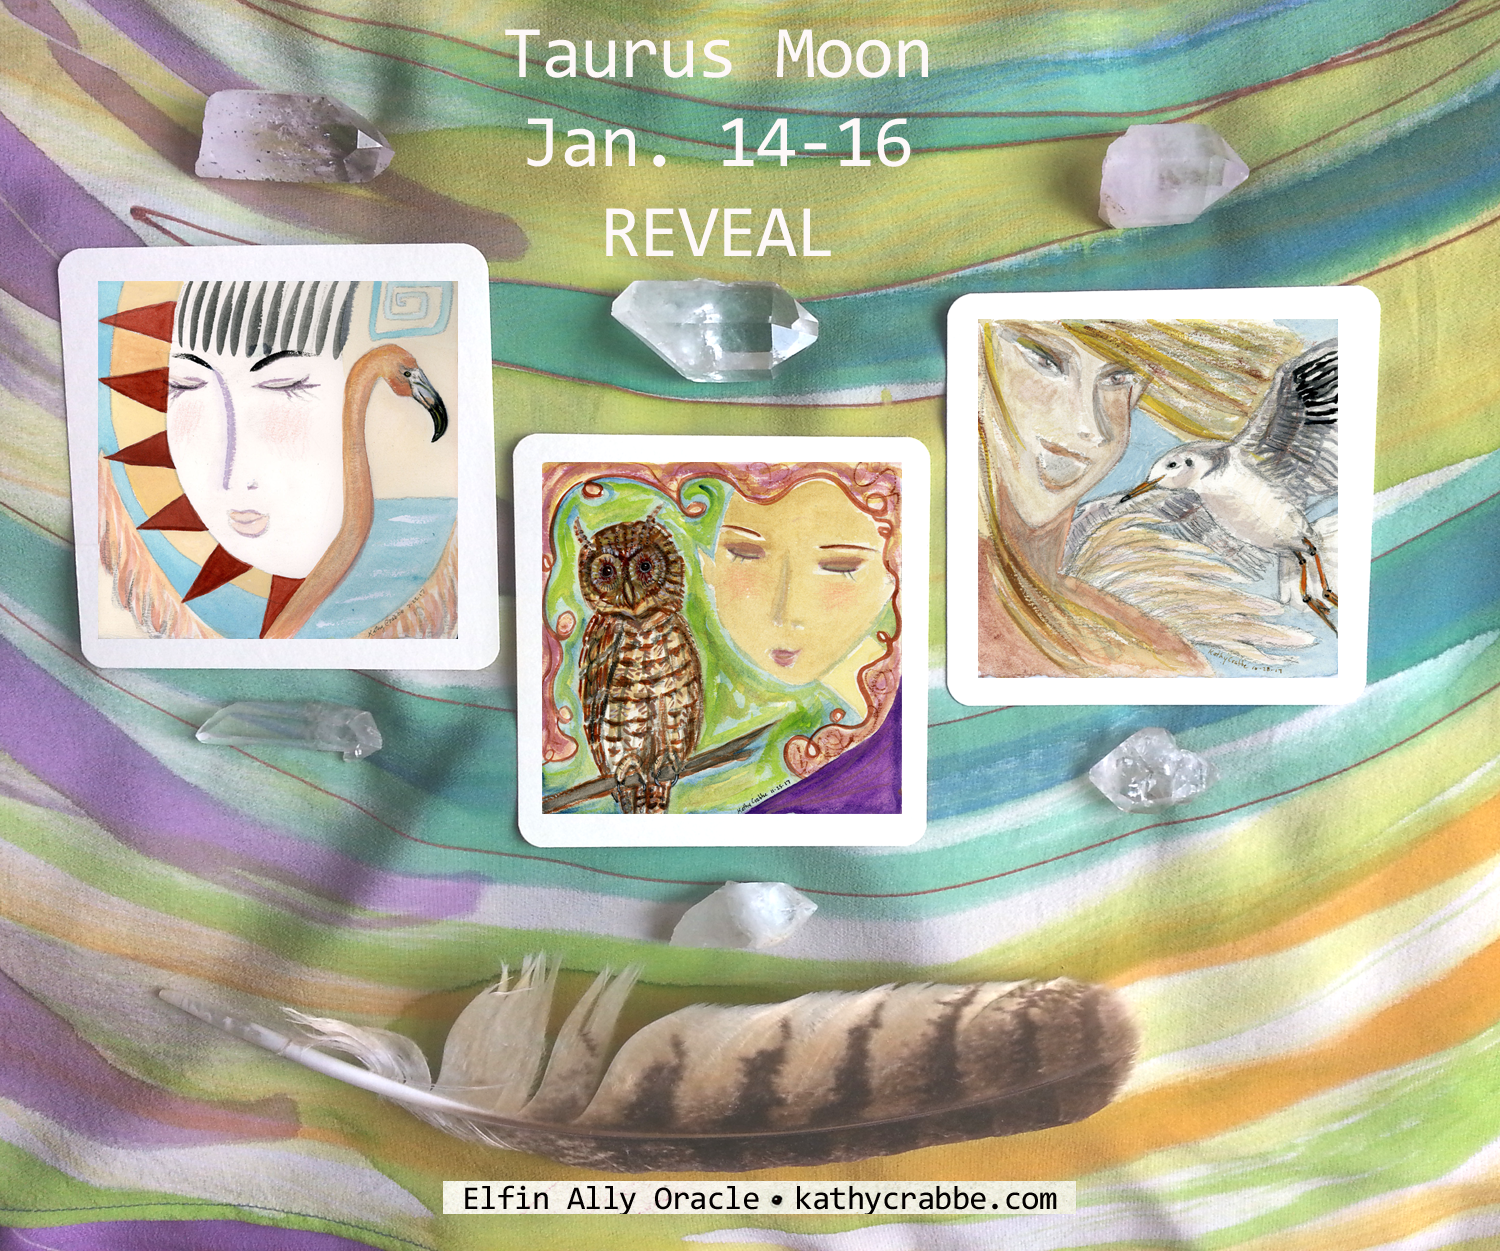 Taurus Moon Elfin Ally Oracle REVEAL by Kathy Crabbe